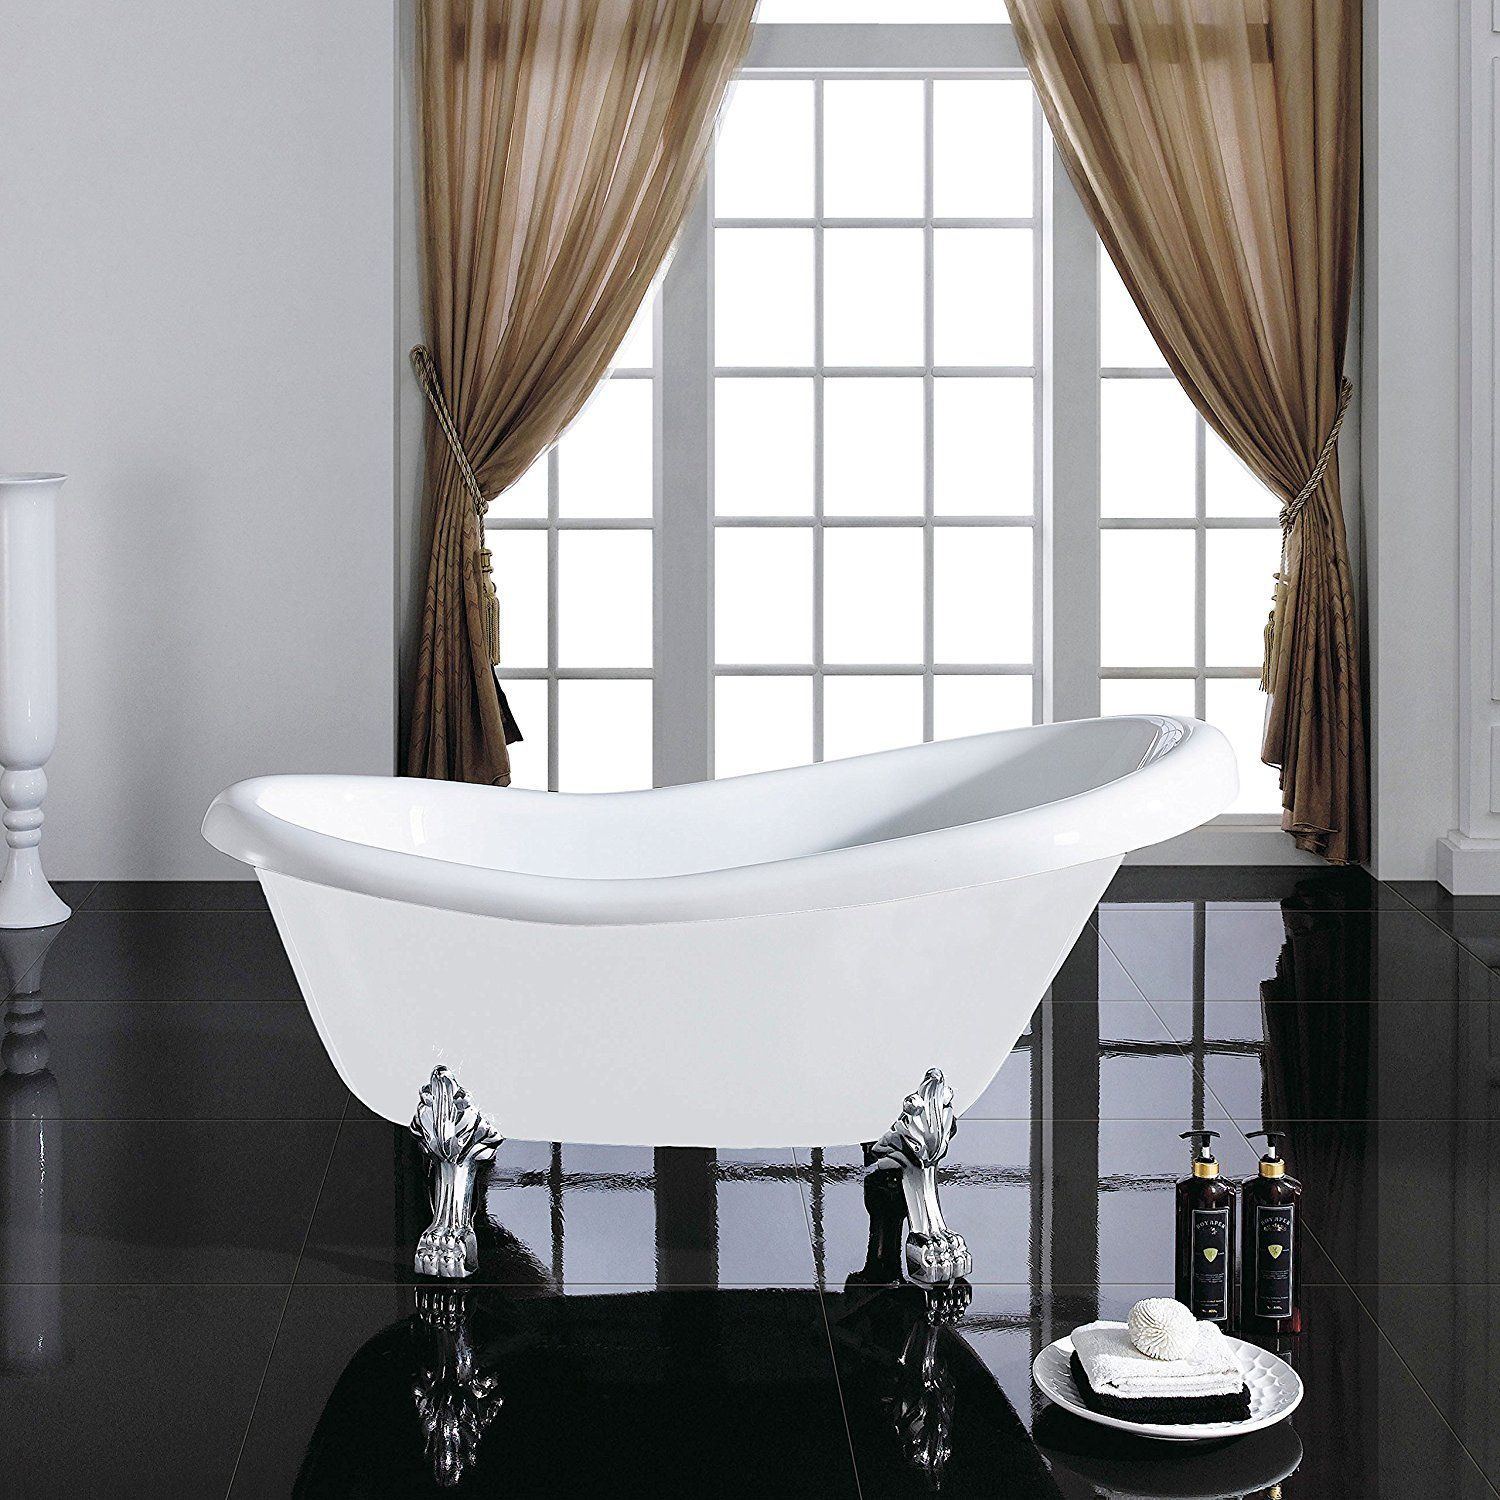 MAYKKE Gibson 67 Inches Traditional Oval Acrylic Clawfoot Tub, White ...